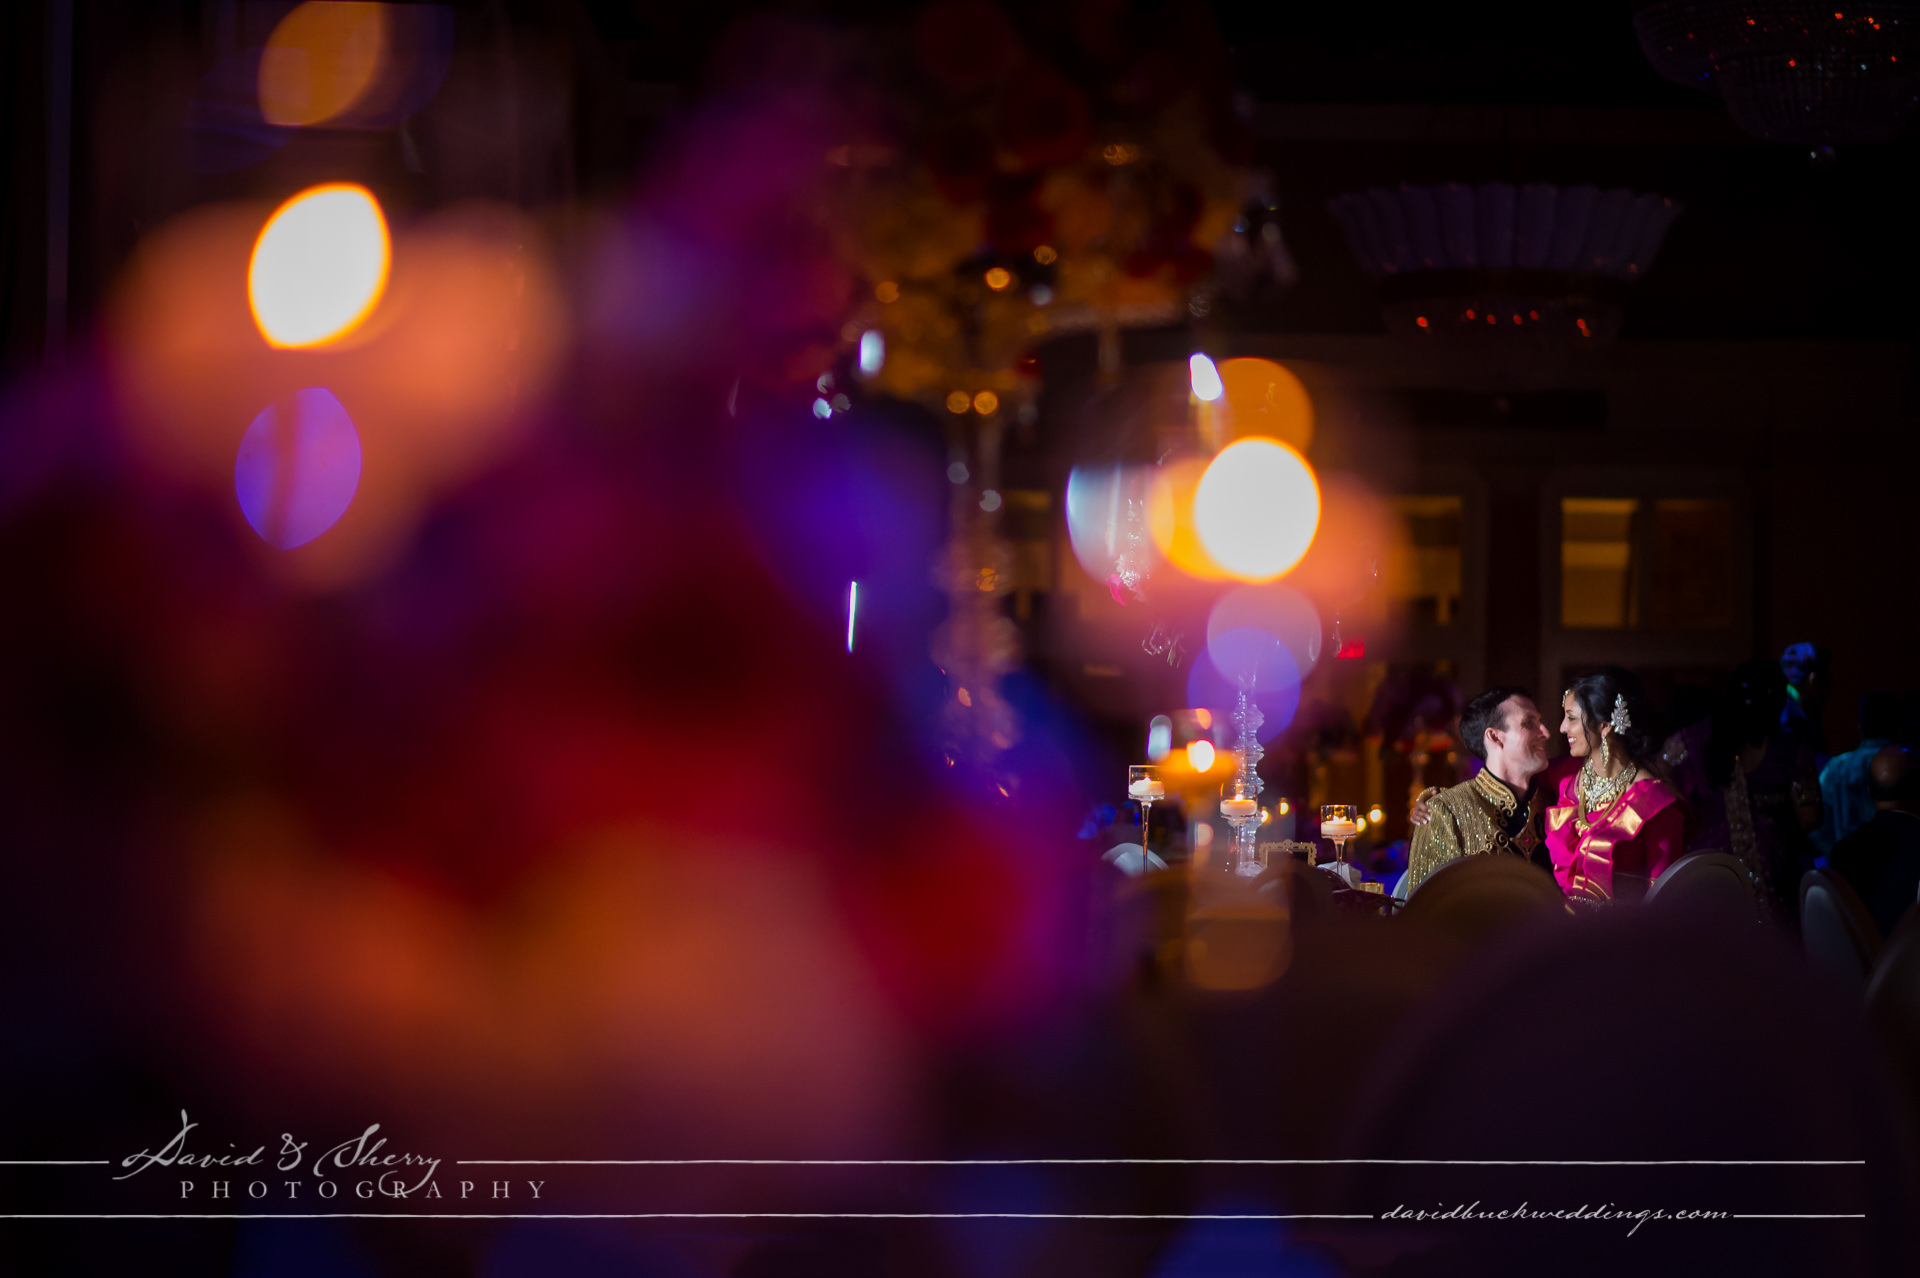 David & Sherry Photography - Luxury Wedding Photography | Liberty Grand